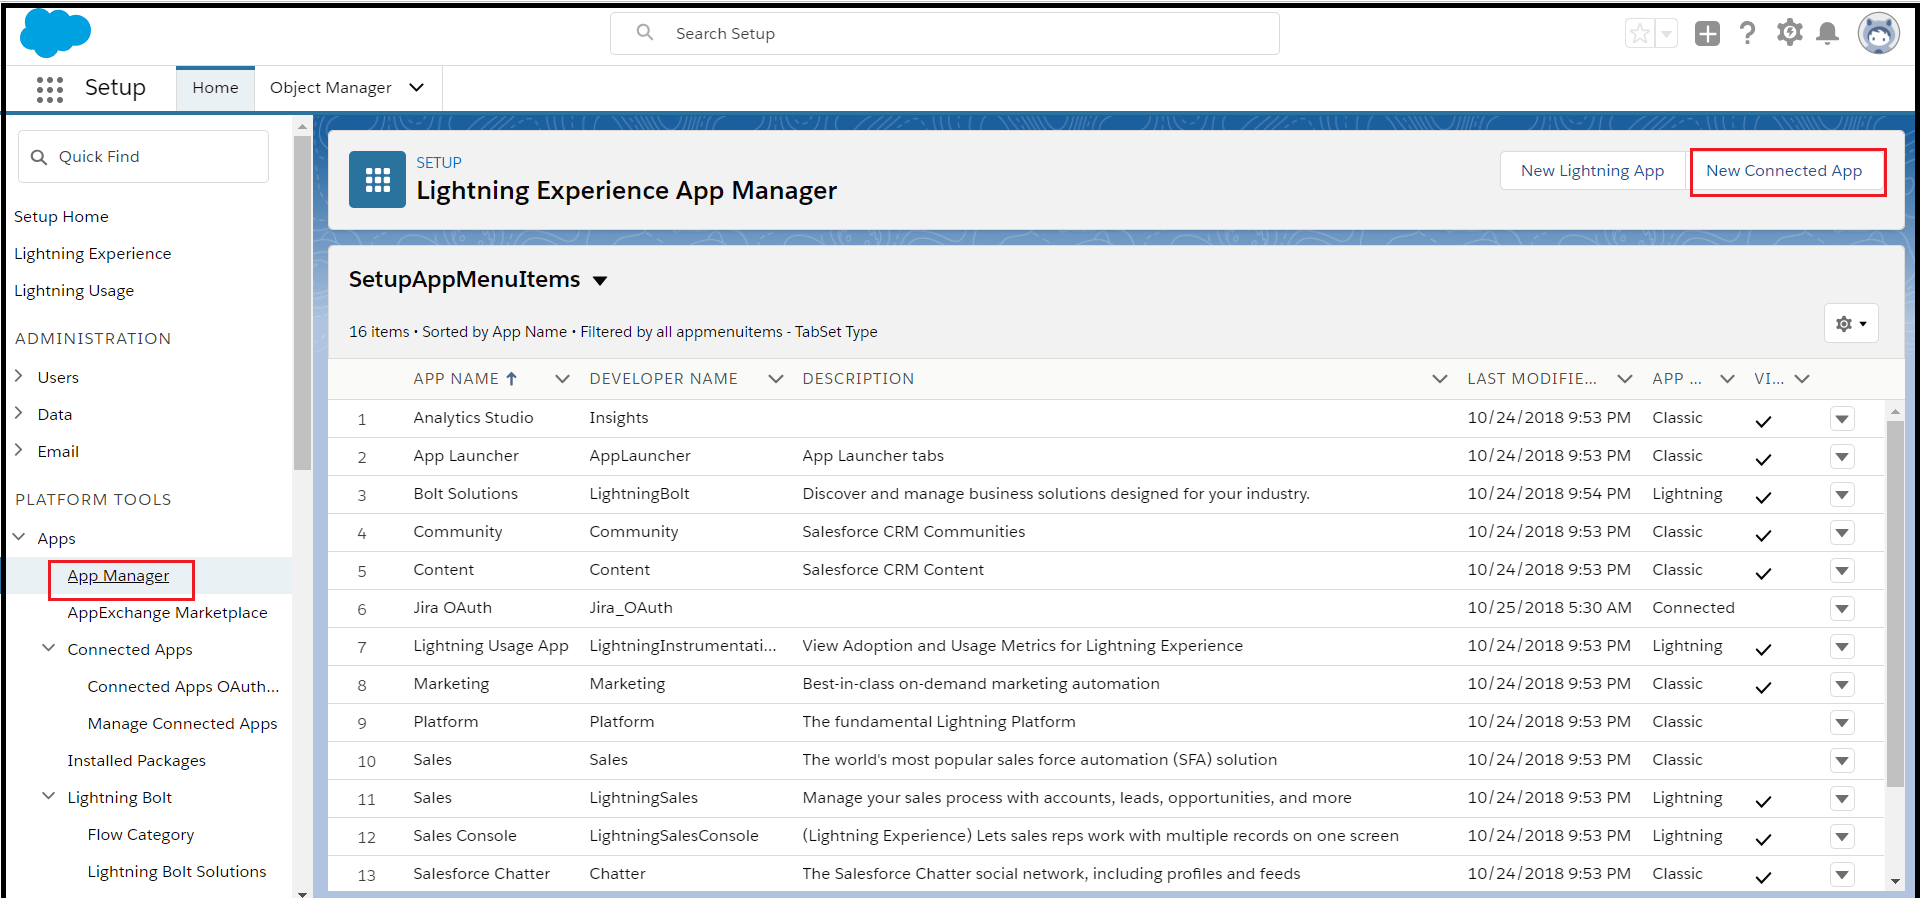 salesforce new connected app